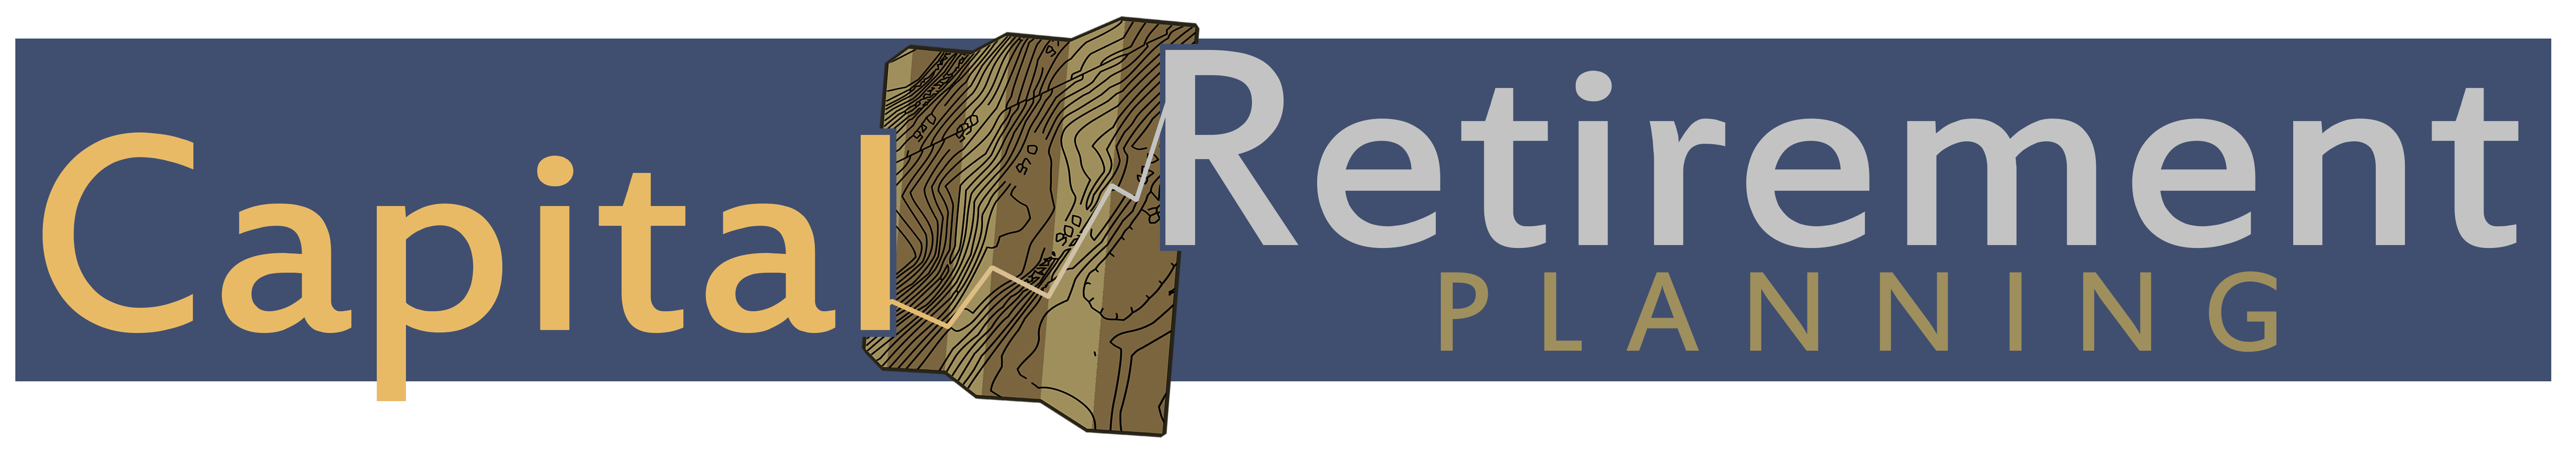 Capital Retirement Planning Logo